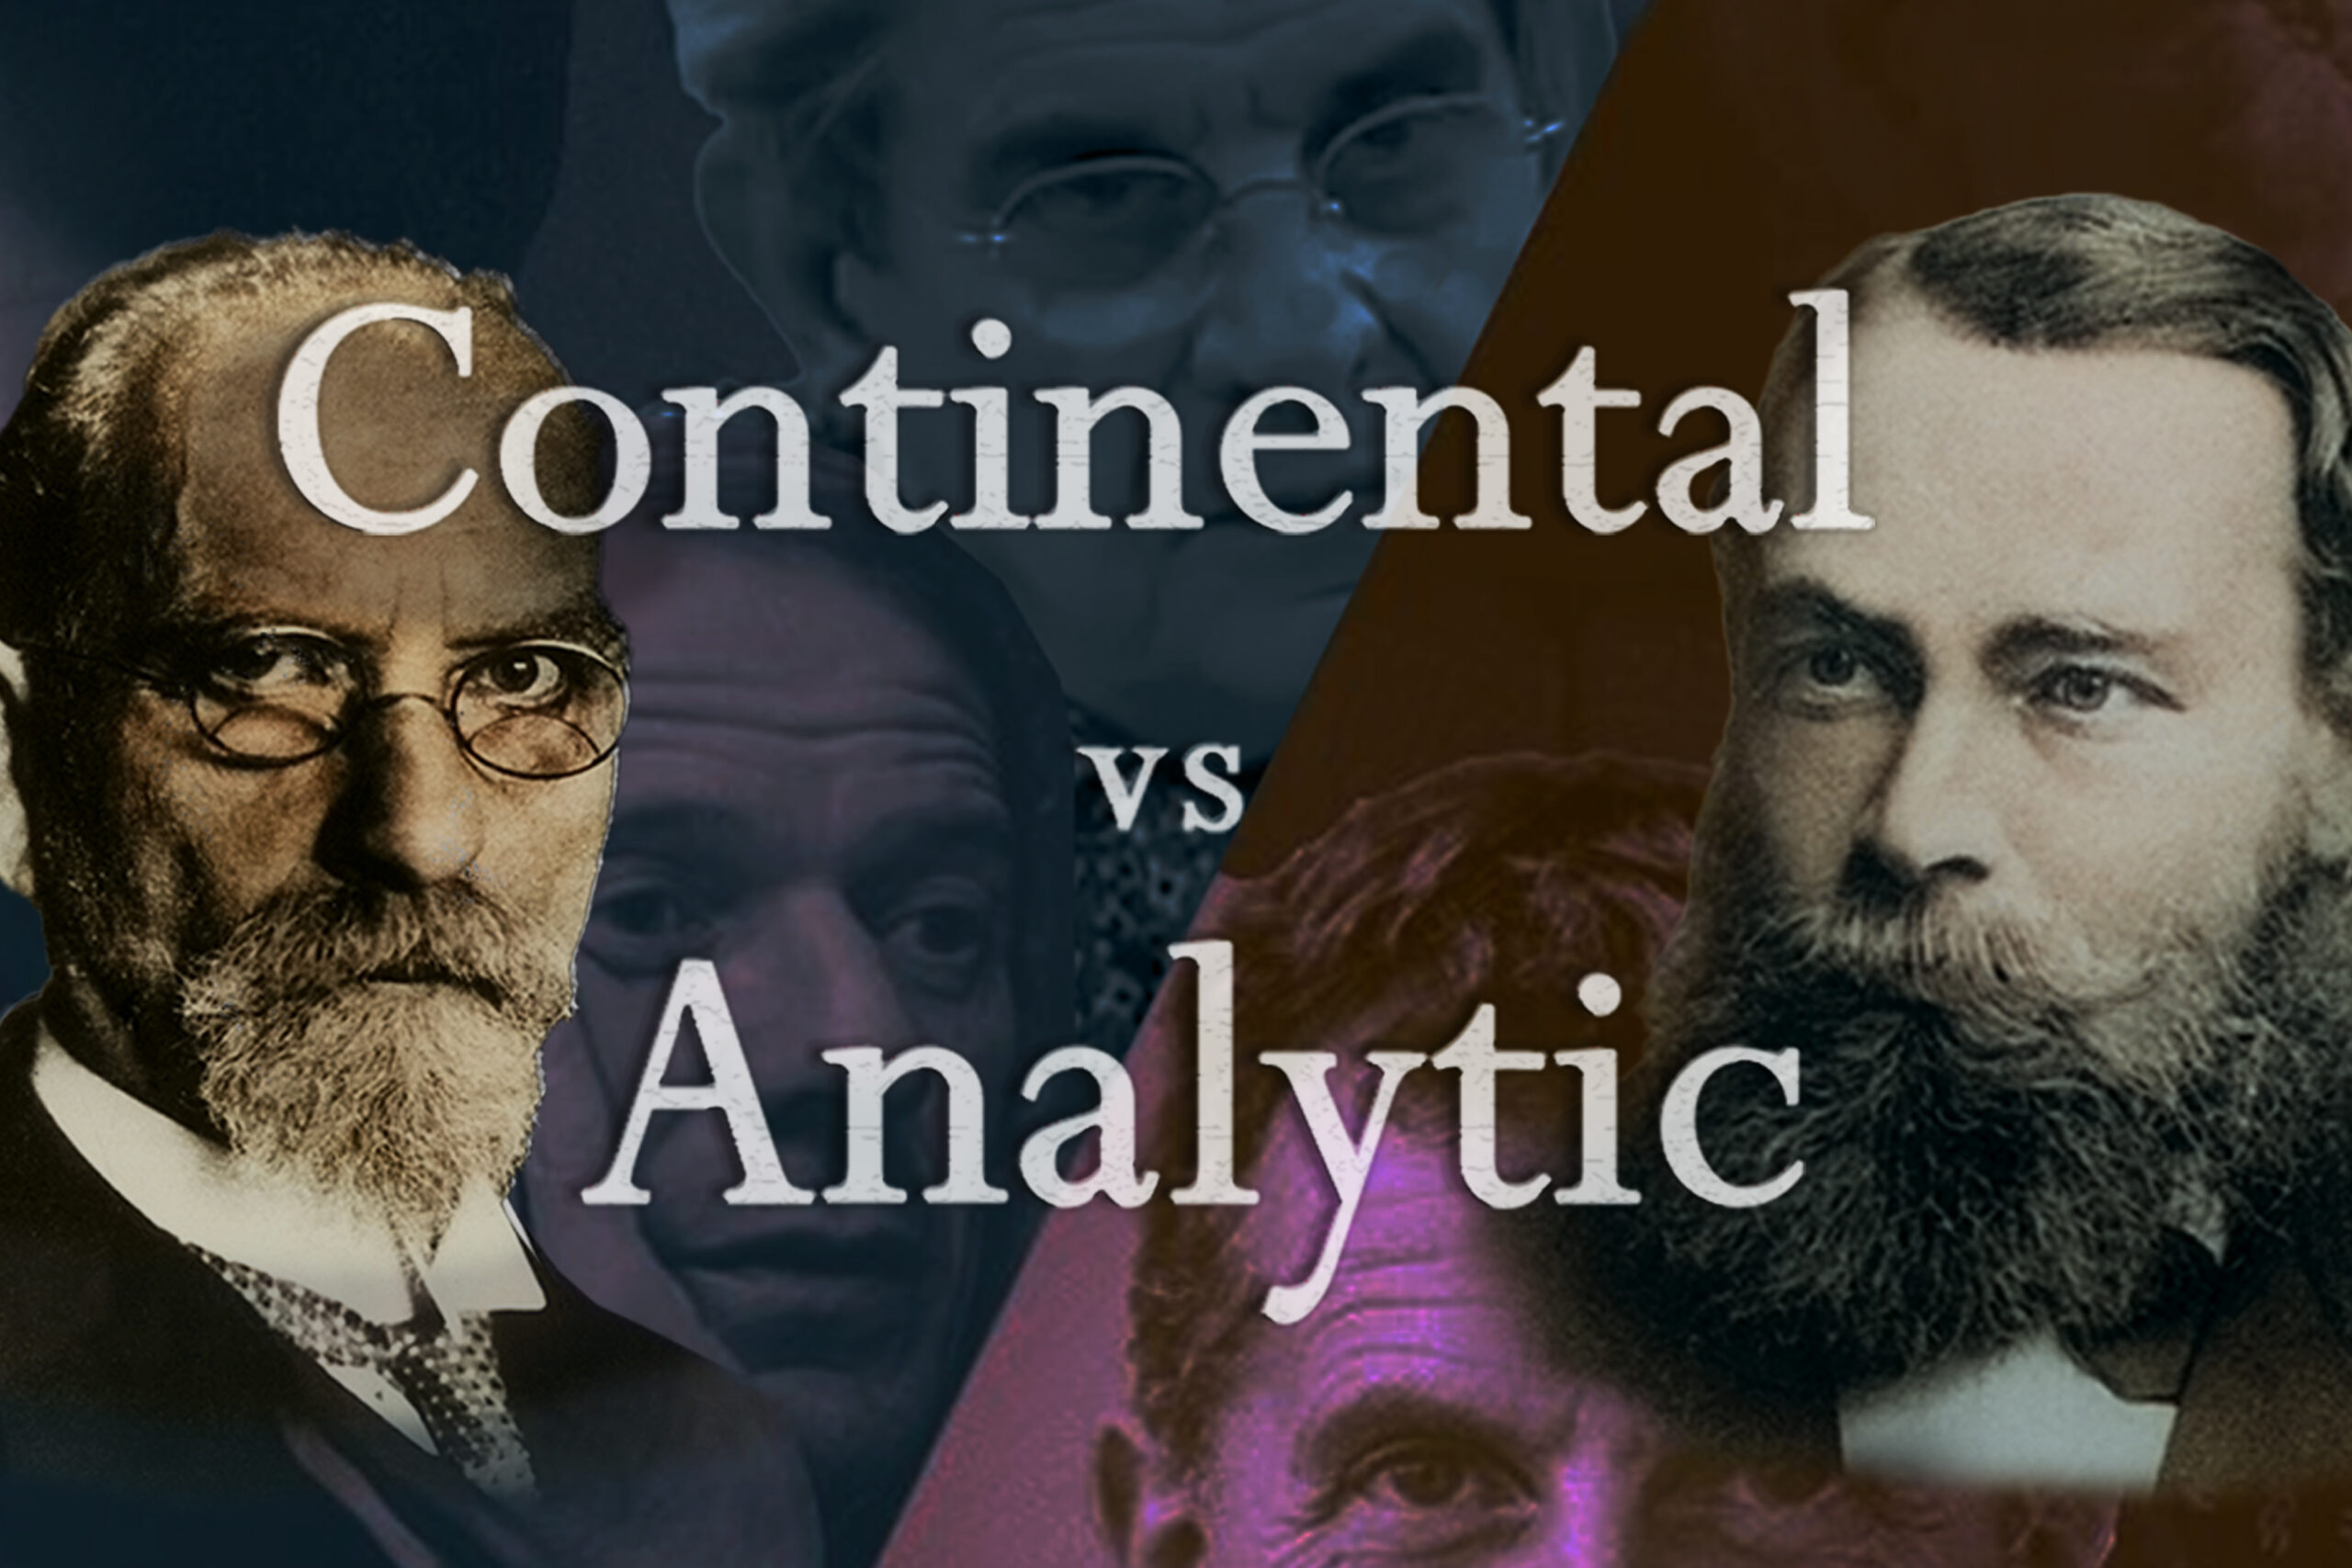 <h1>Analytic vs. Continental Philosophy</h1> <h4>The origins of the modern divide in philosophy</h4>